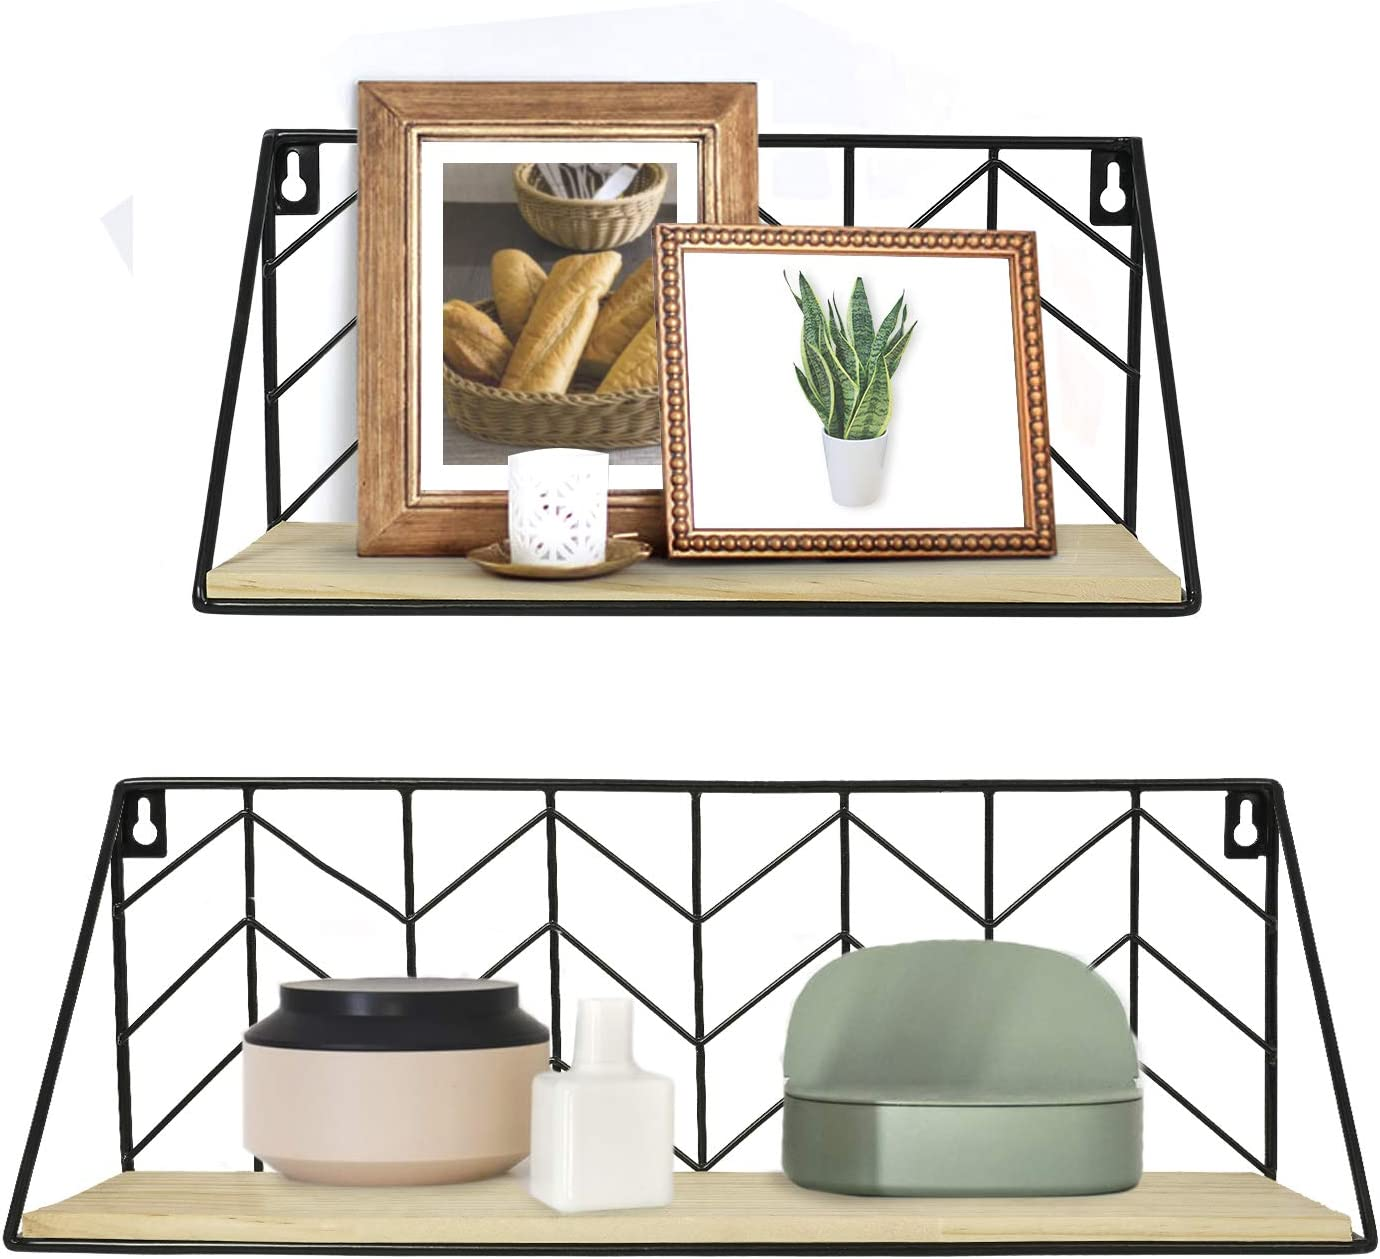 Small and Large Kitchen Set of 2 Black Wire Metal Wood Shelves Bedroom Living Room TIMEYARD Floating Shelves Wall Mounted Bathroom Dorm Modern Arrow Design Storage Shelf for Small Items